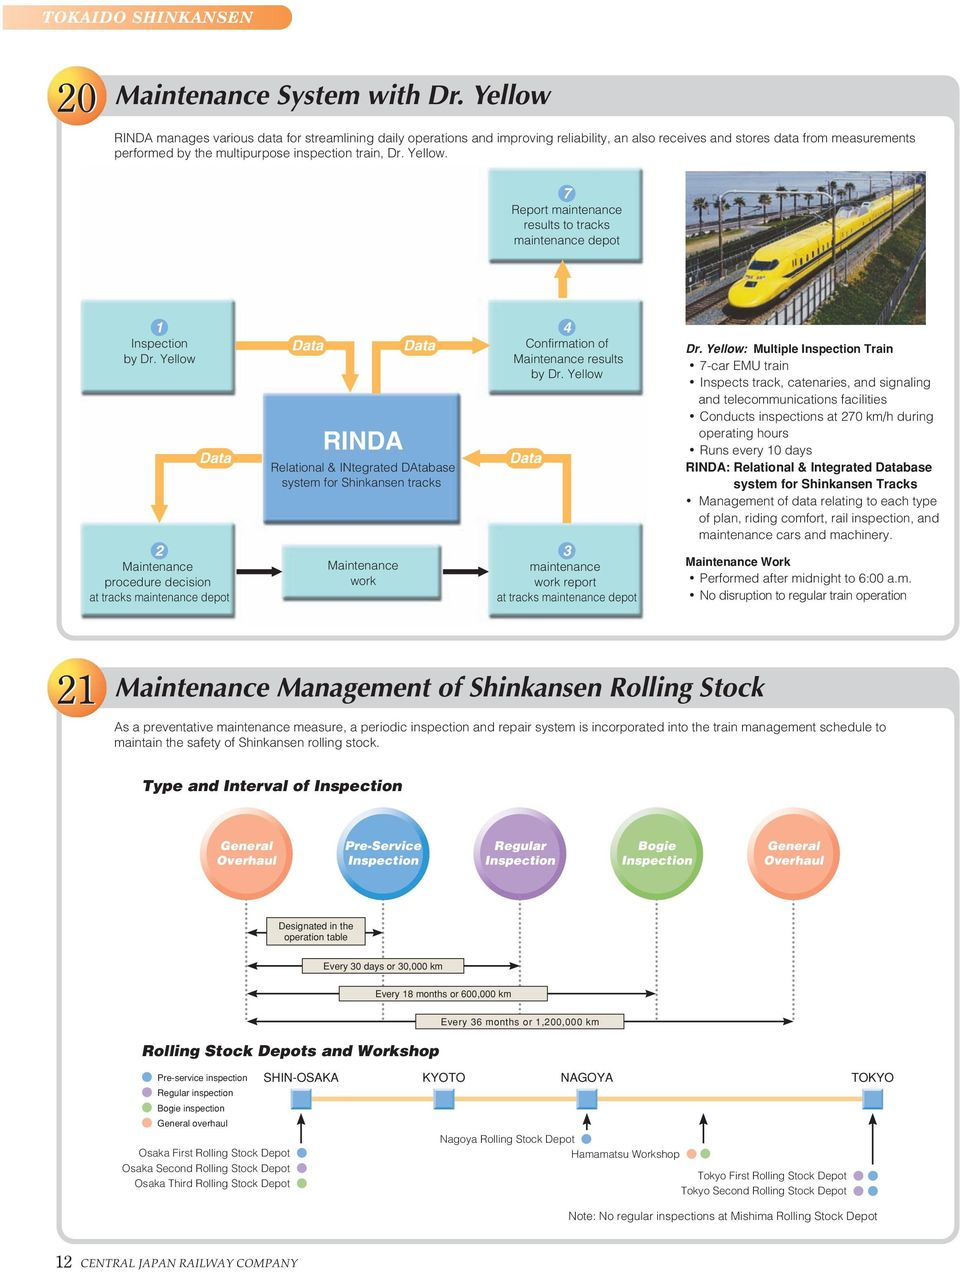 Yellow. 7 Report maintenance results to tracks maintenance depot 1 Inspection by Dr.